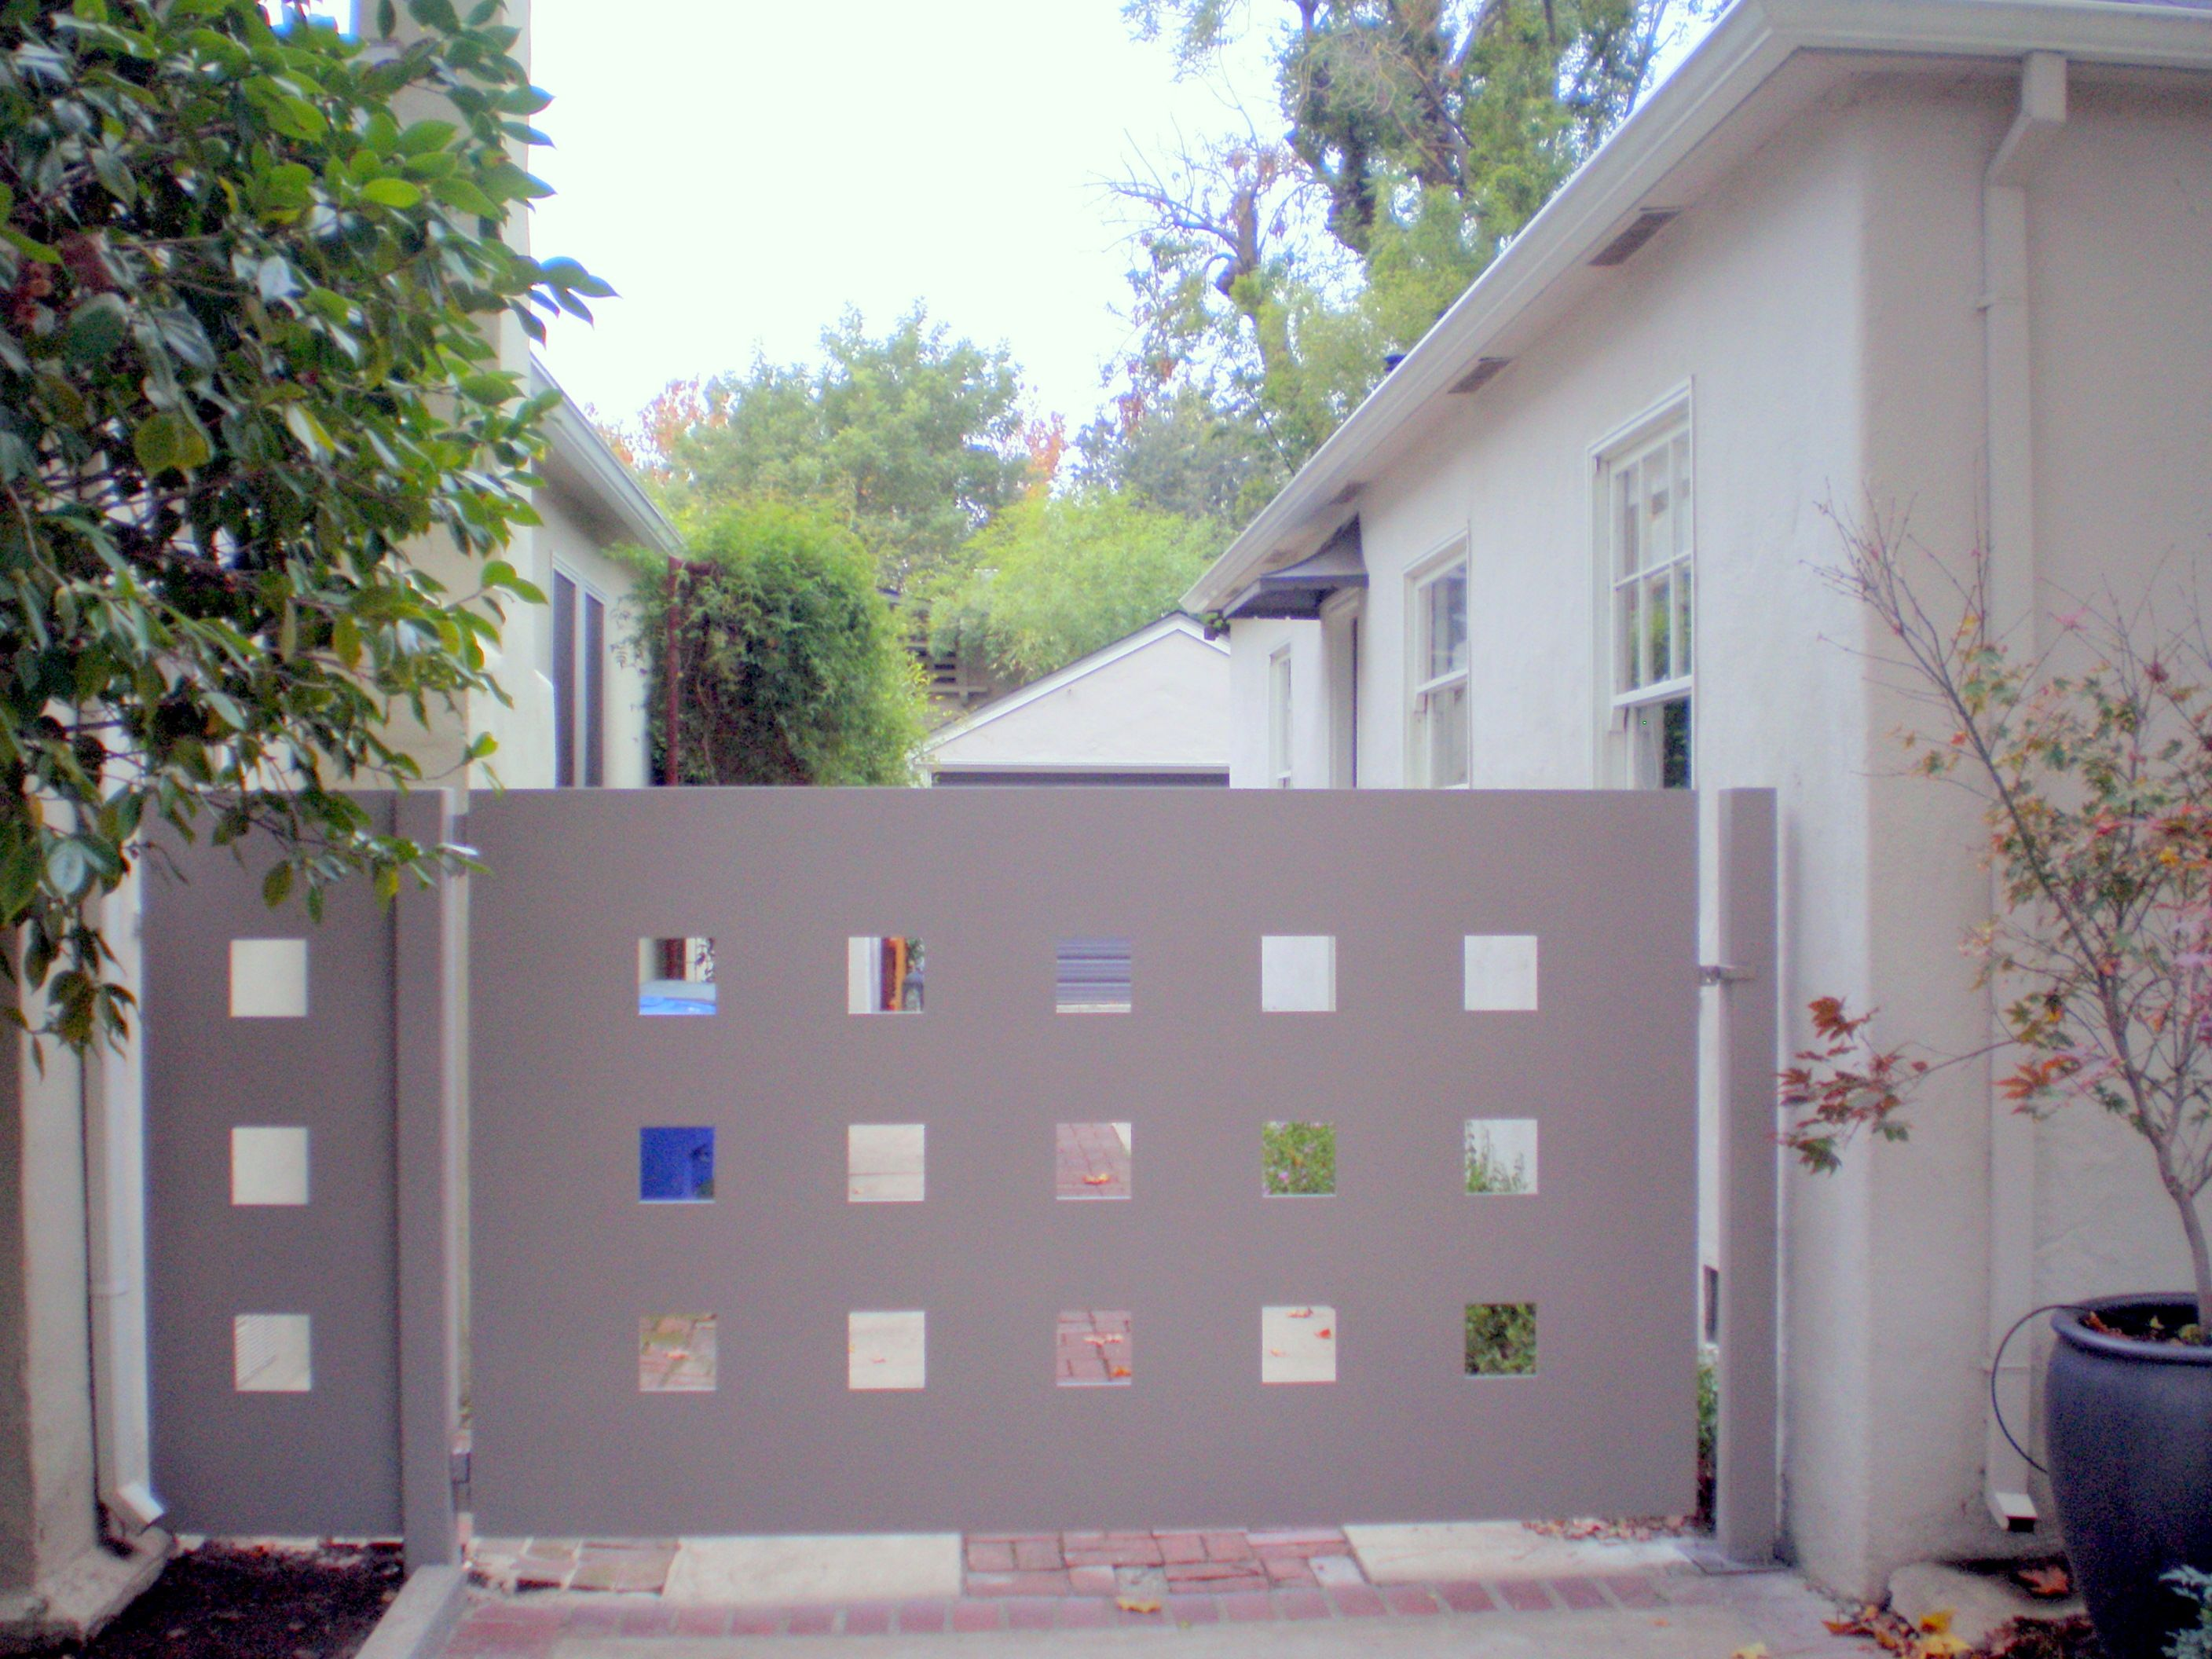 1000+ images about Metal gates on Pinterest - ^